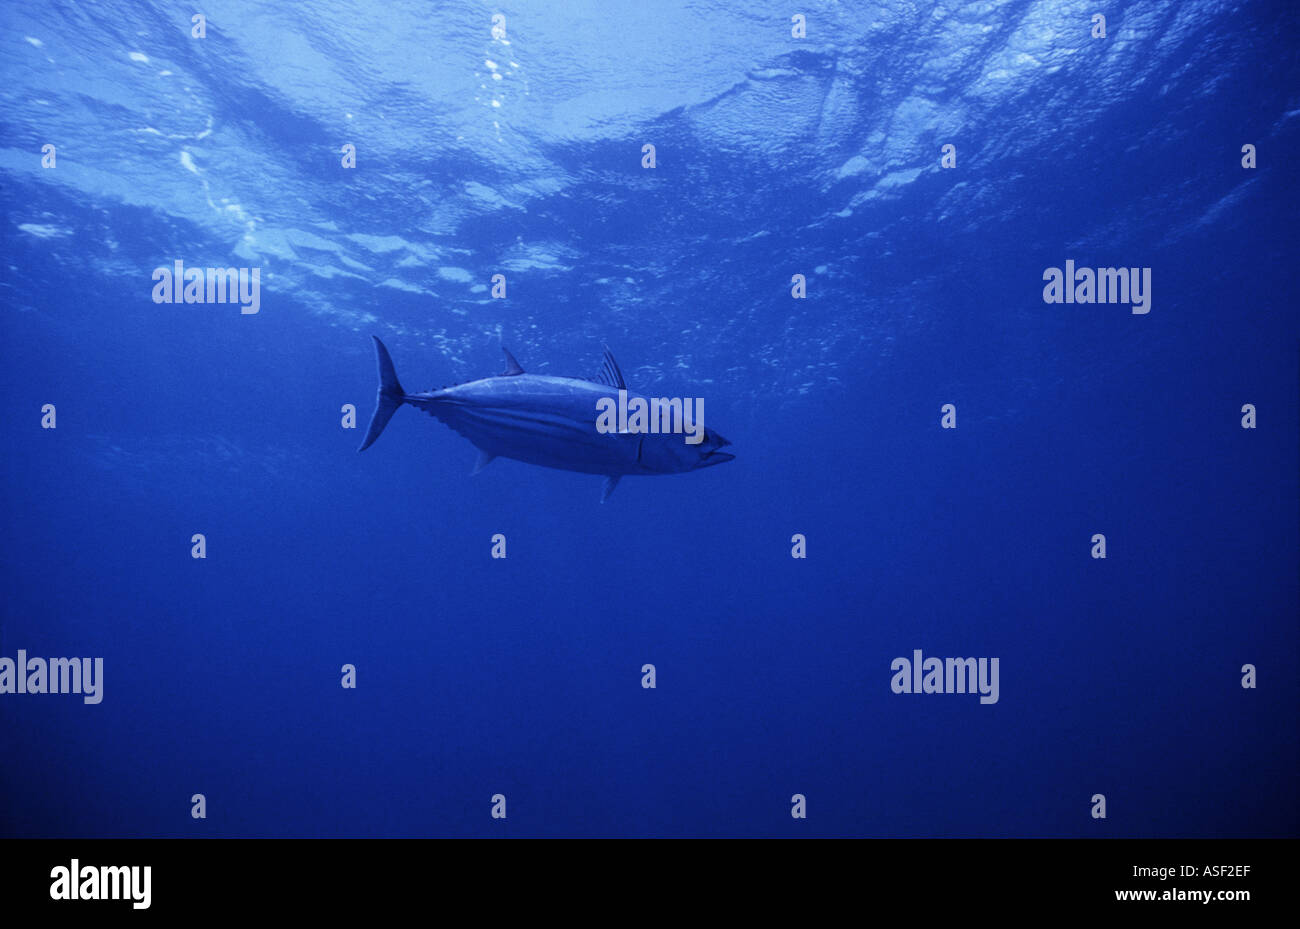 Skipjack tuna Katsuwonus pelamis swimming in clear blue oceanic water Bay of Plenty New Zealand - Stock Image